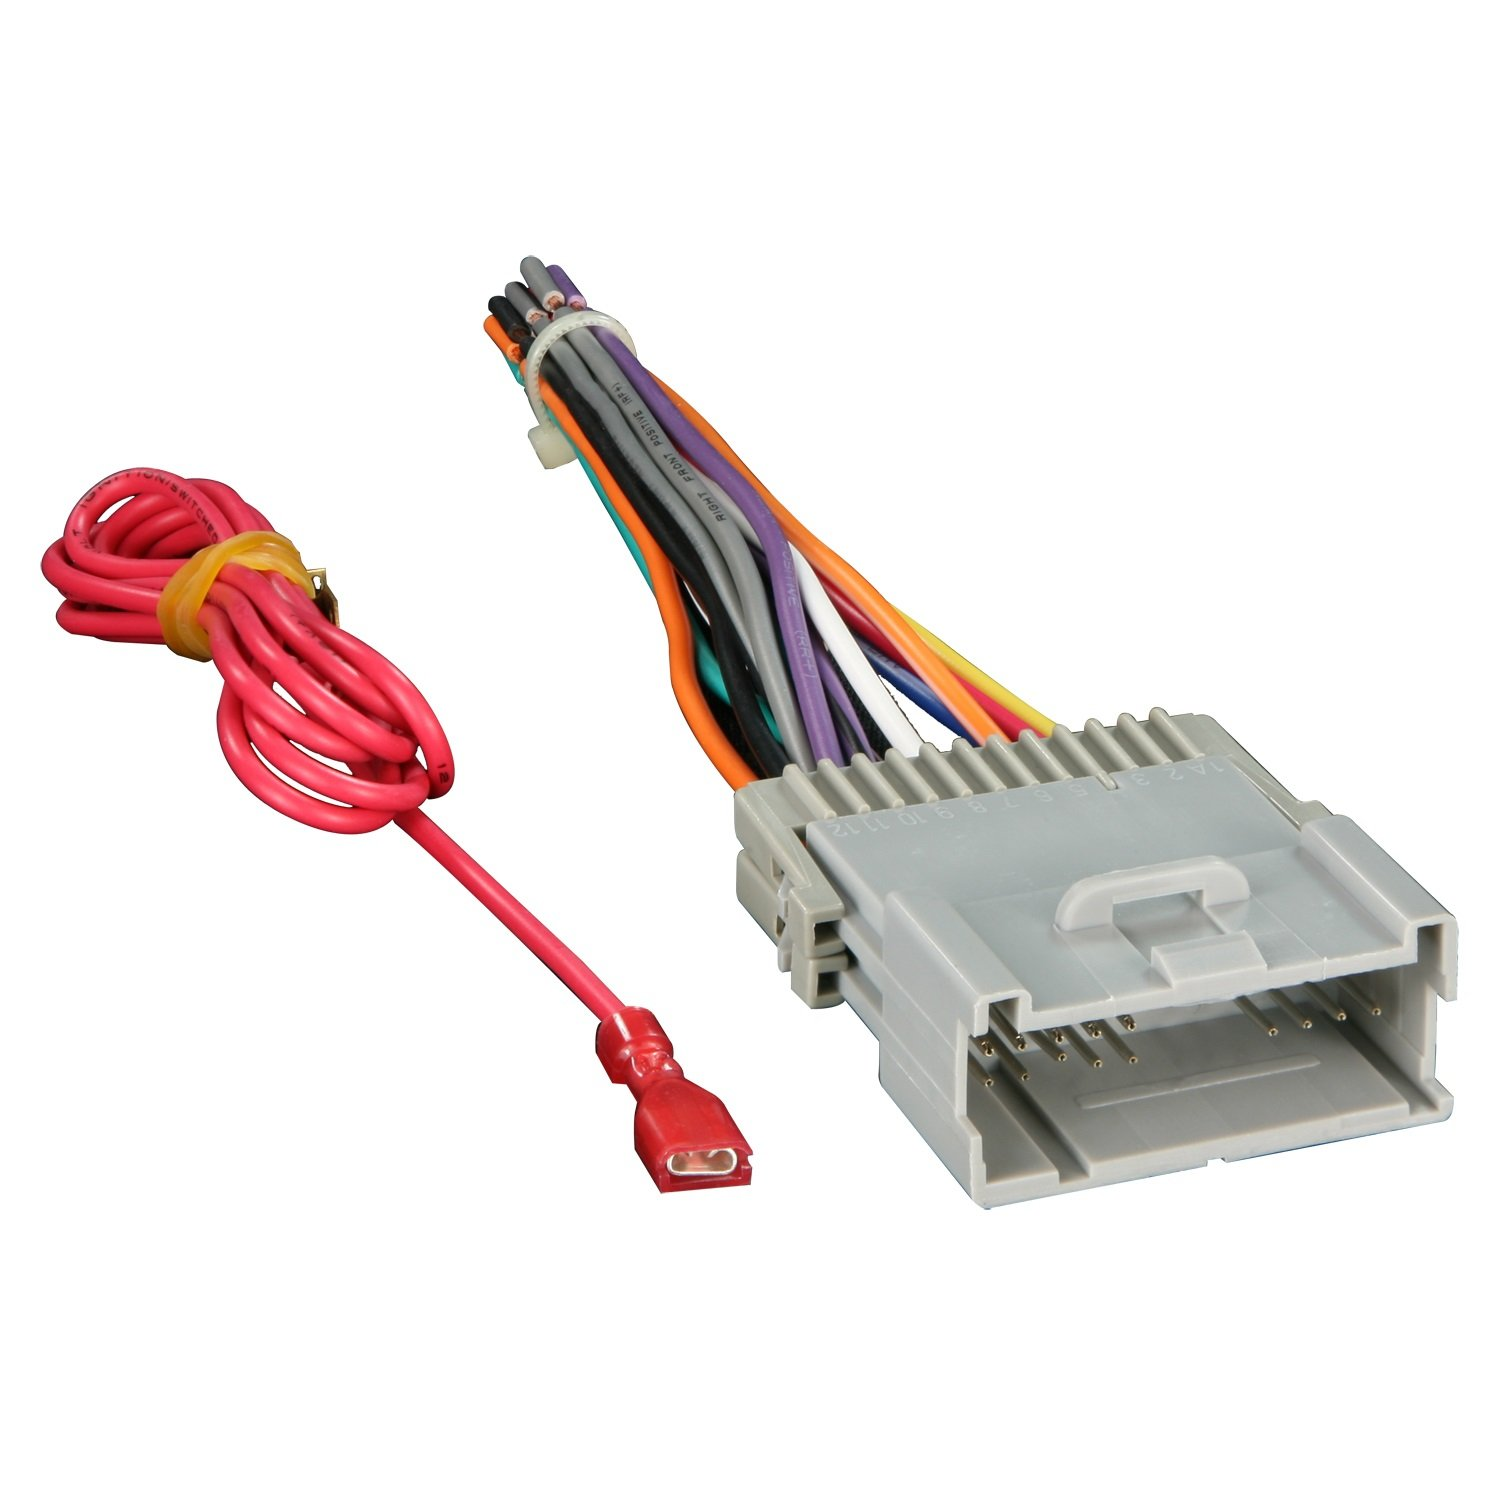 61eewxp9orL._SL1500_ amazon com metra 70 2003 radio wiring harness for gm 98 08 how to install wire harness car stereo at fashall.co